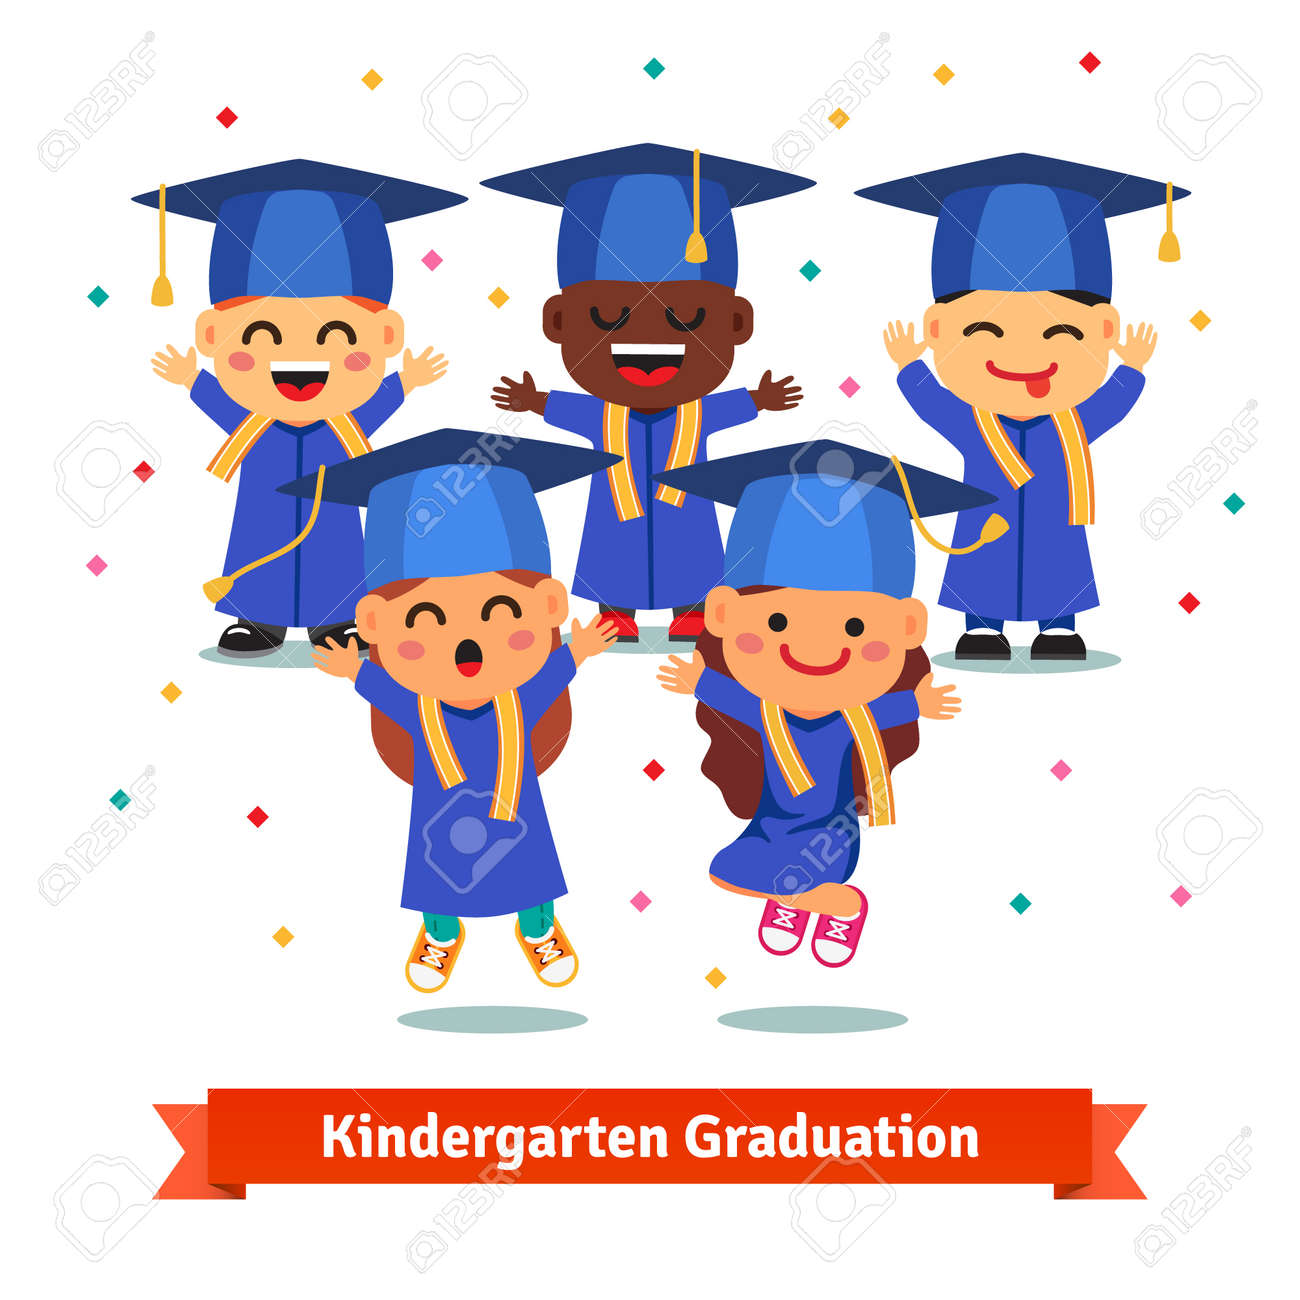 Kindergarten Graduation Party Kids In Mortar Boards And Gowns Rh 123rf Com Clipart 2017